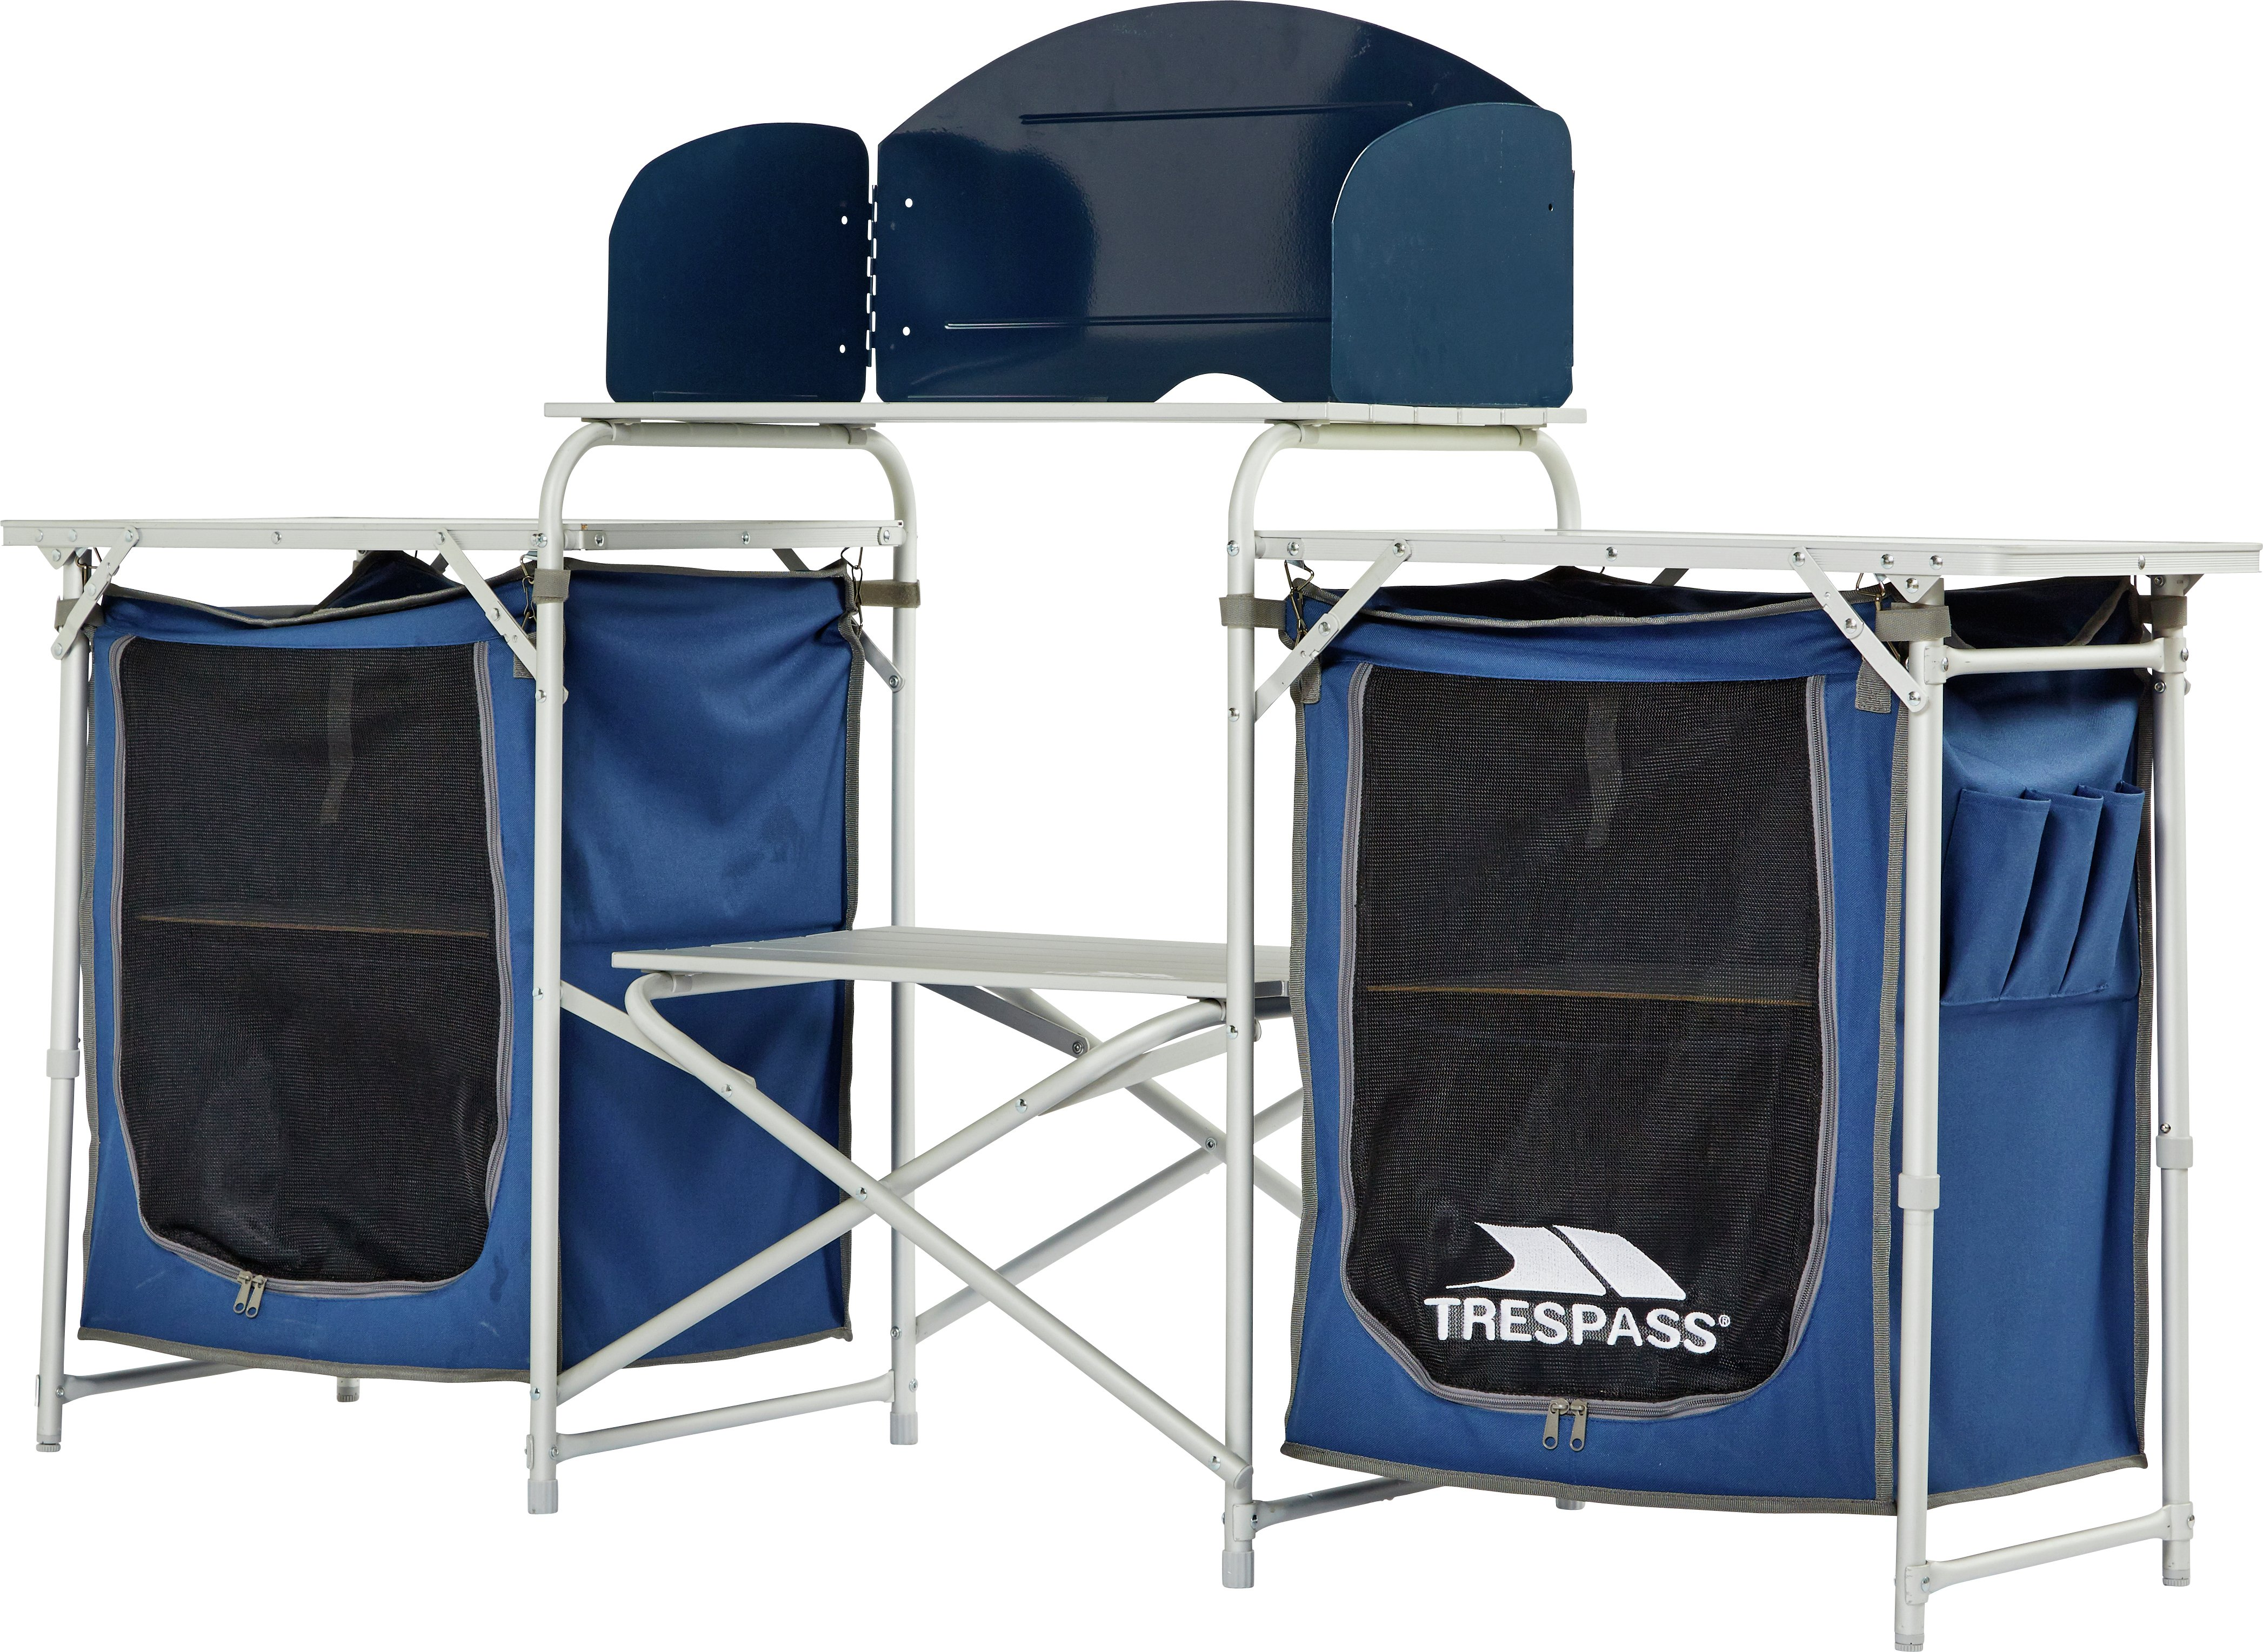 folding kitchen table and chairs argos couch chair covers bed bath beyond sale on trespass camping now